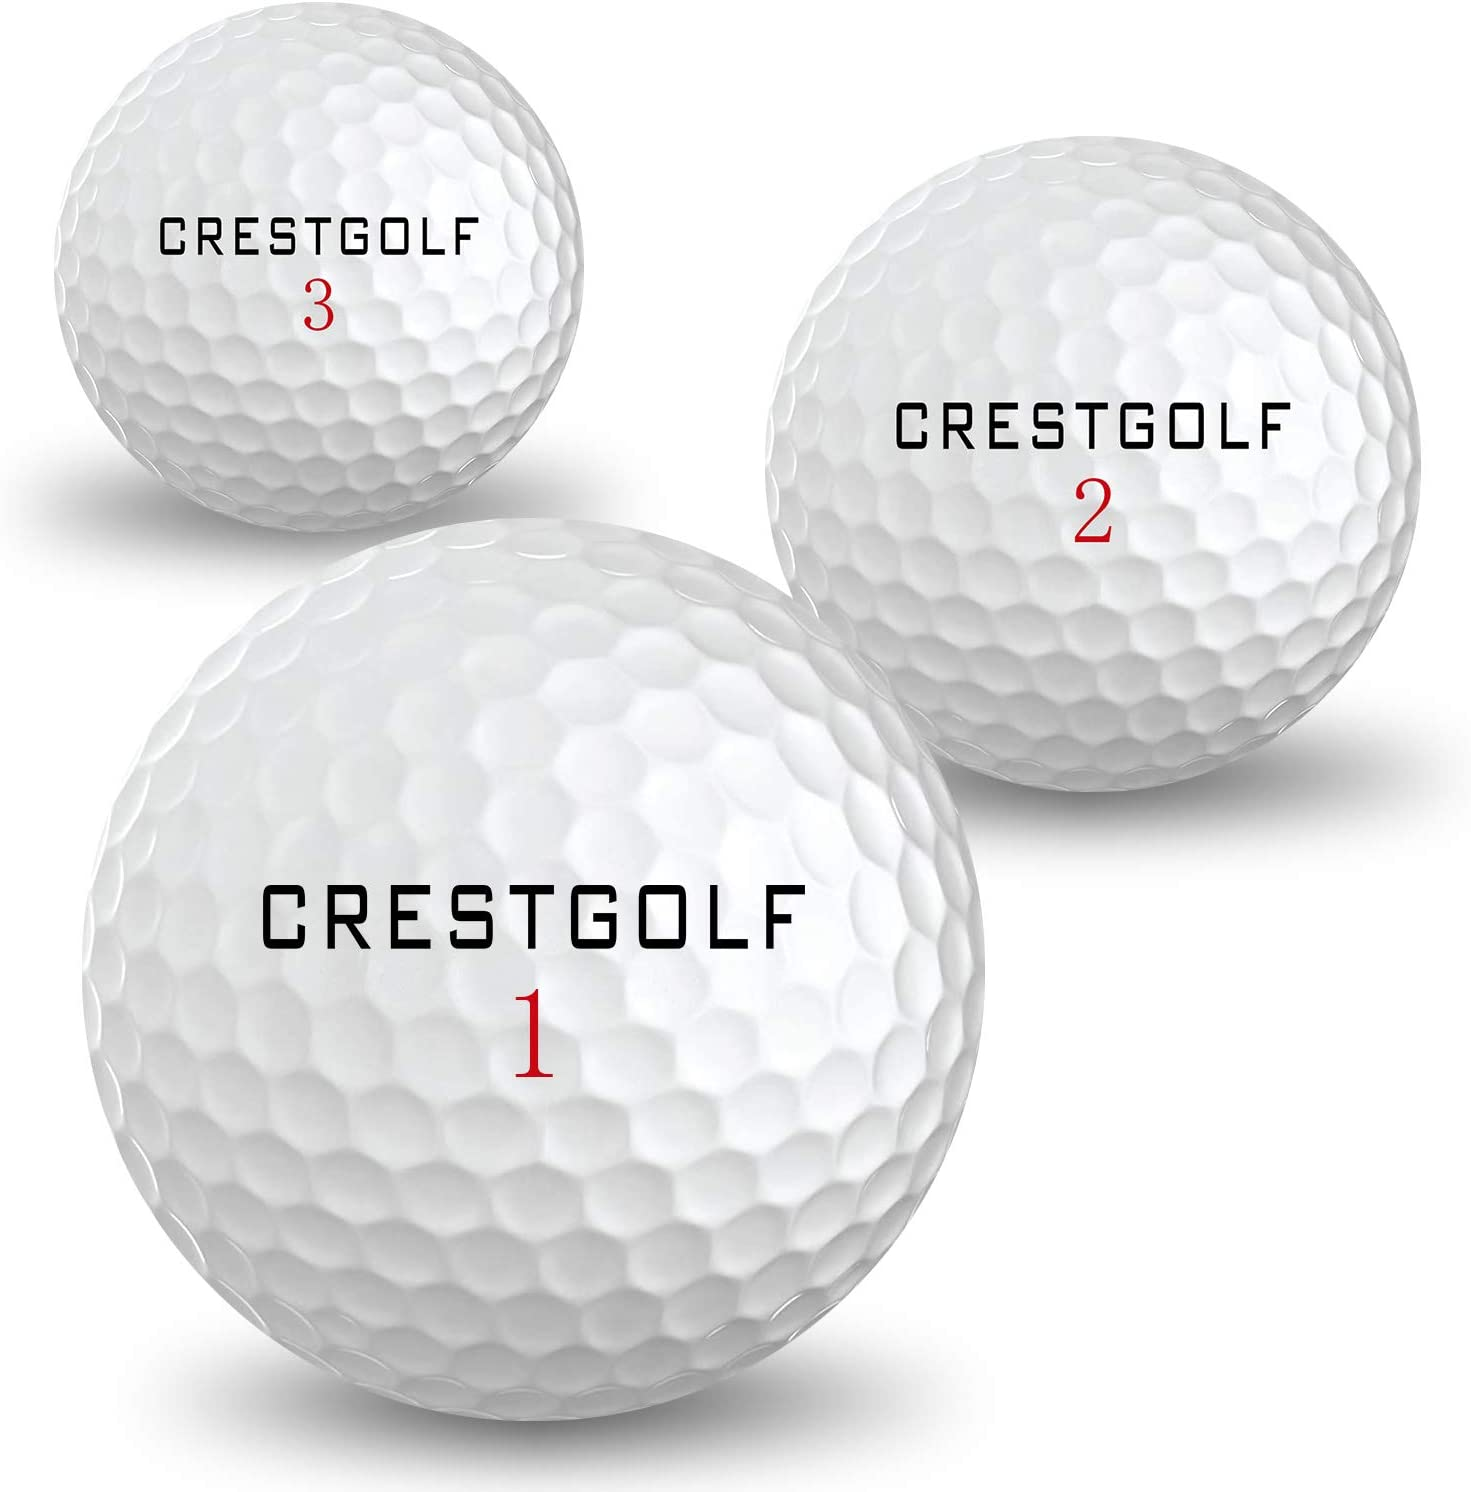 Crestgolf Soft-Feeling Golf Balls, Long Distance Golf Ball with Durable Urethane Cover for Swinging Speed High or Slower, Regulation Size Spin Golf Ball for Golf Shot Game